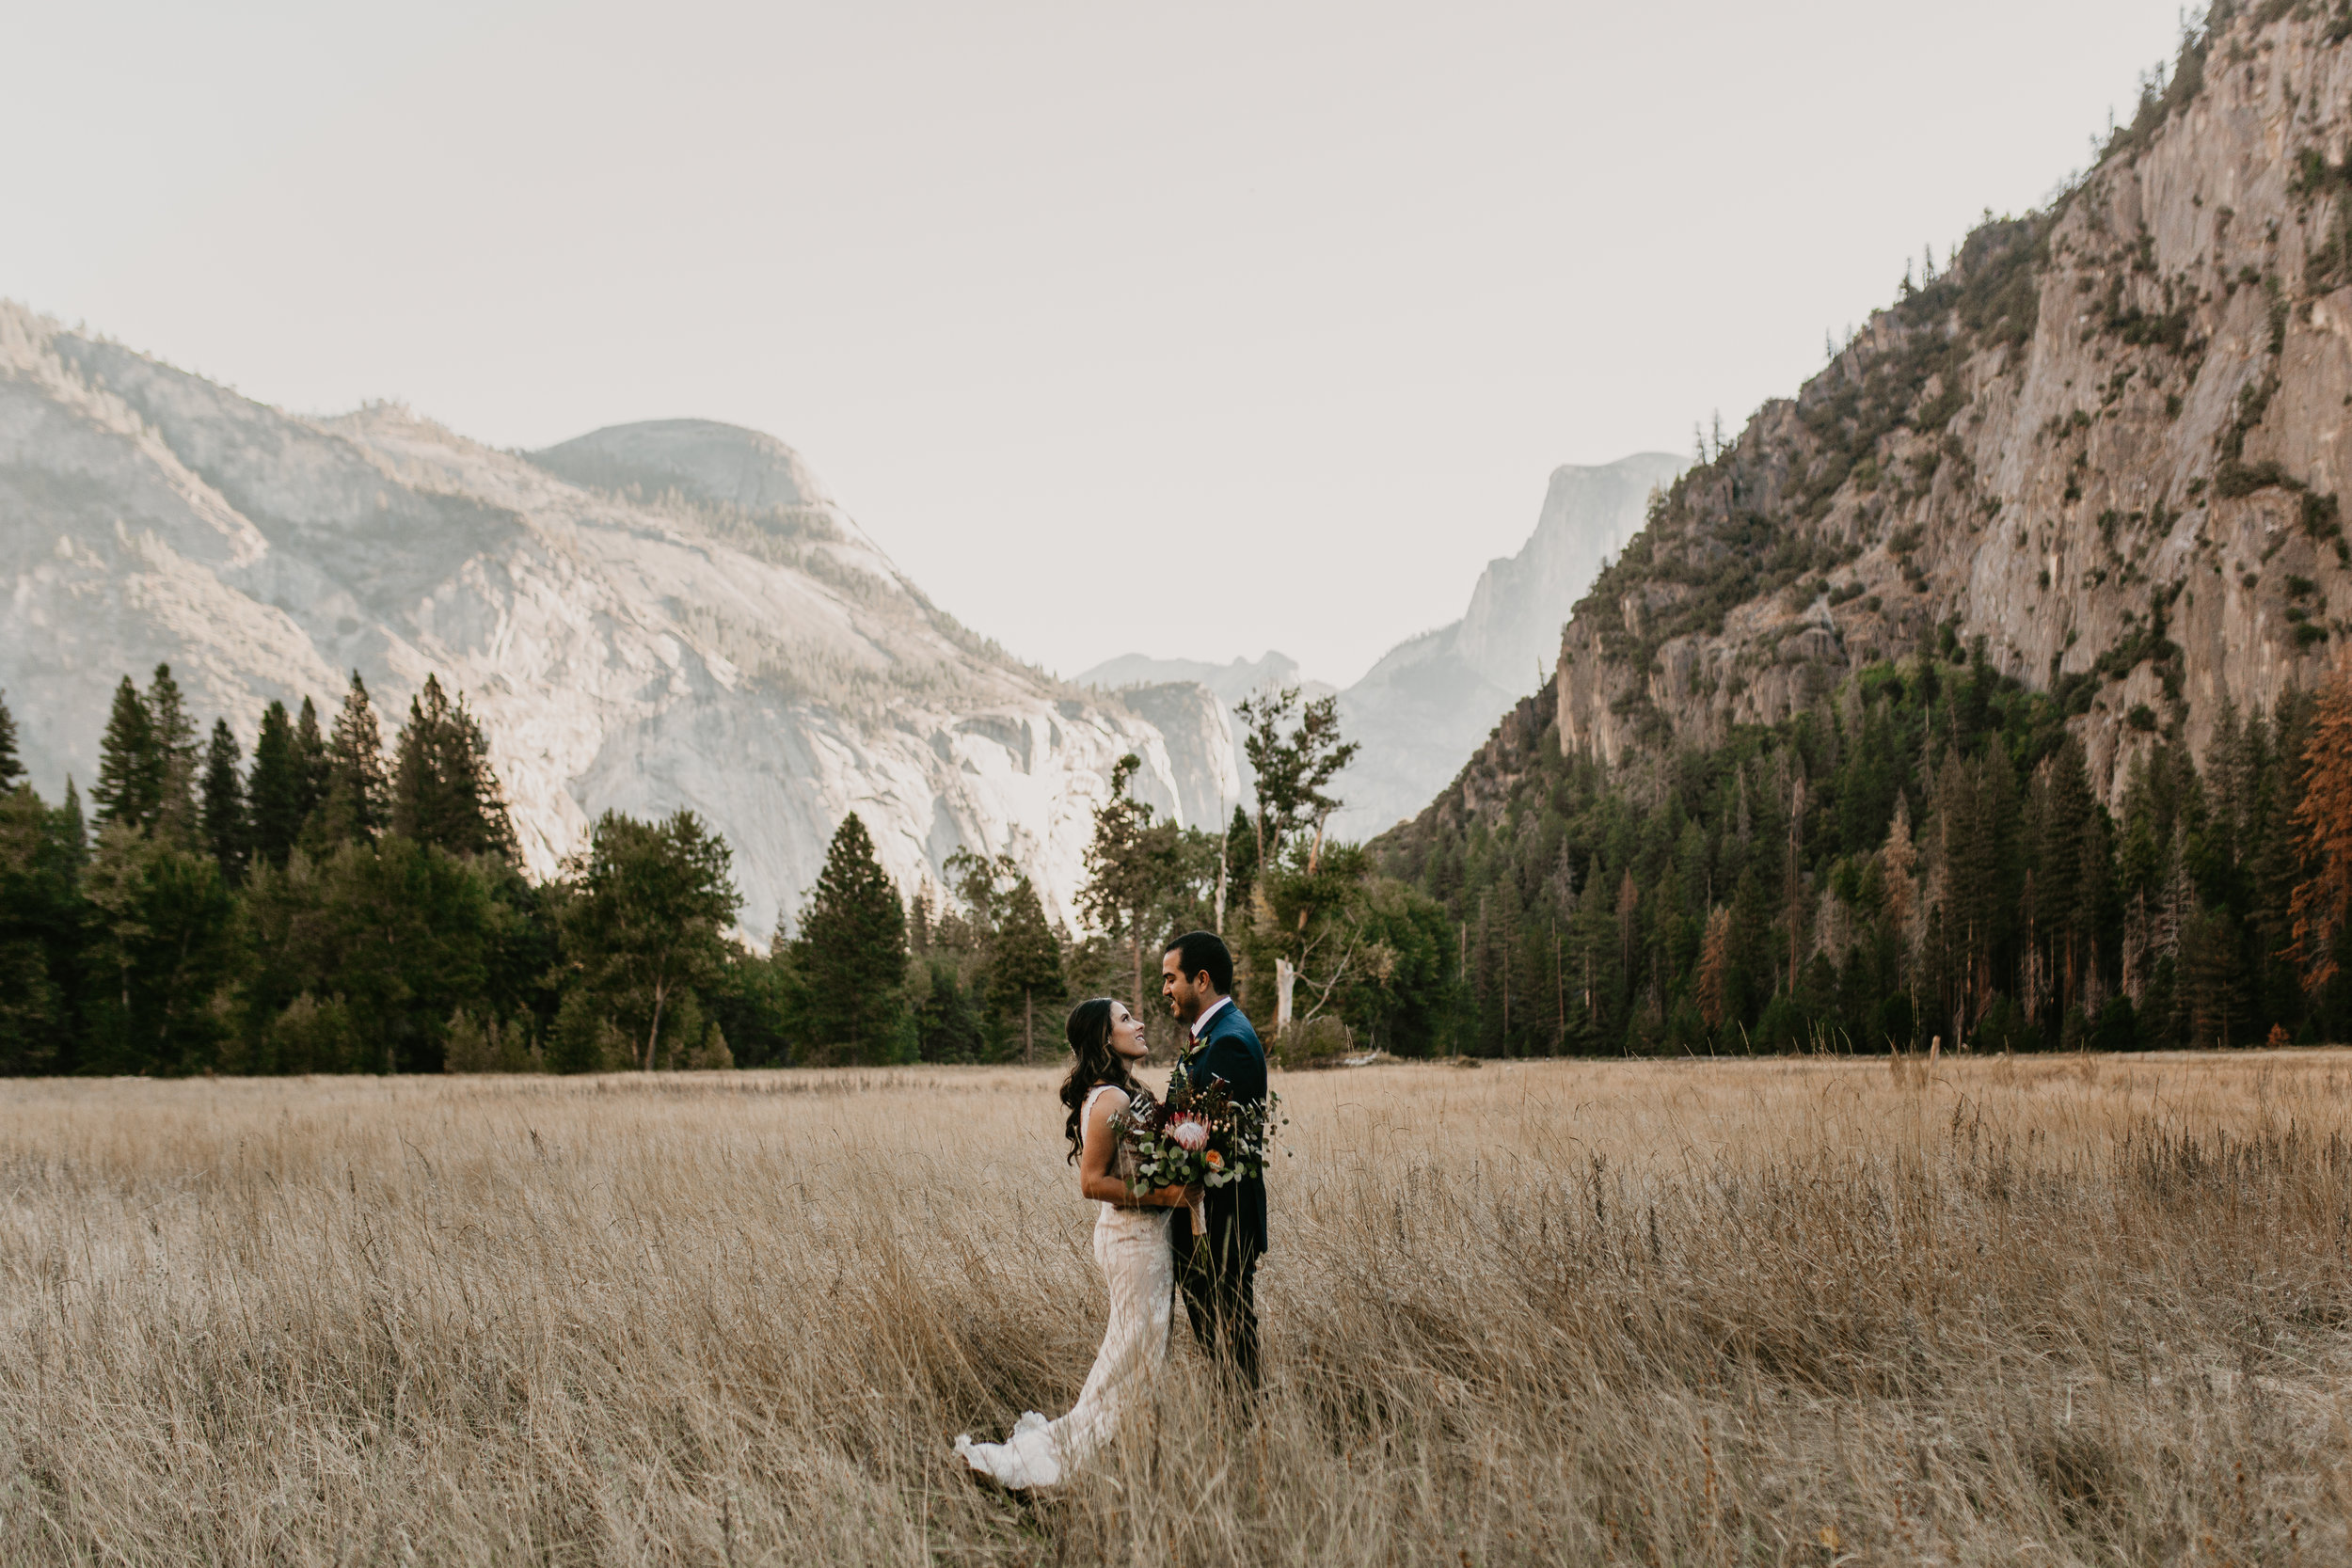 nicole-daacke-photography-intimate-elopement-wedding-yosemite-national-park-california-taft-point-sunset-photos-yosemite-valley-tunnel-view-first-look-sunrise-golden-granite-hiking-adventure-wedding-adventurous-elopement-photographer-8.jpg